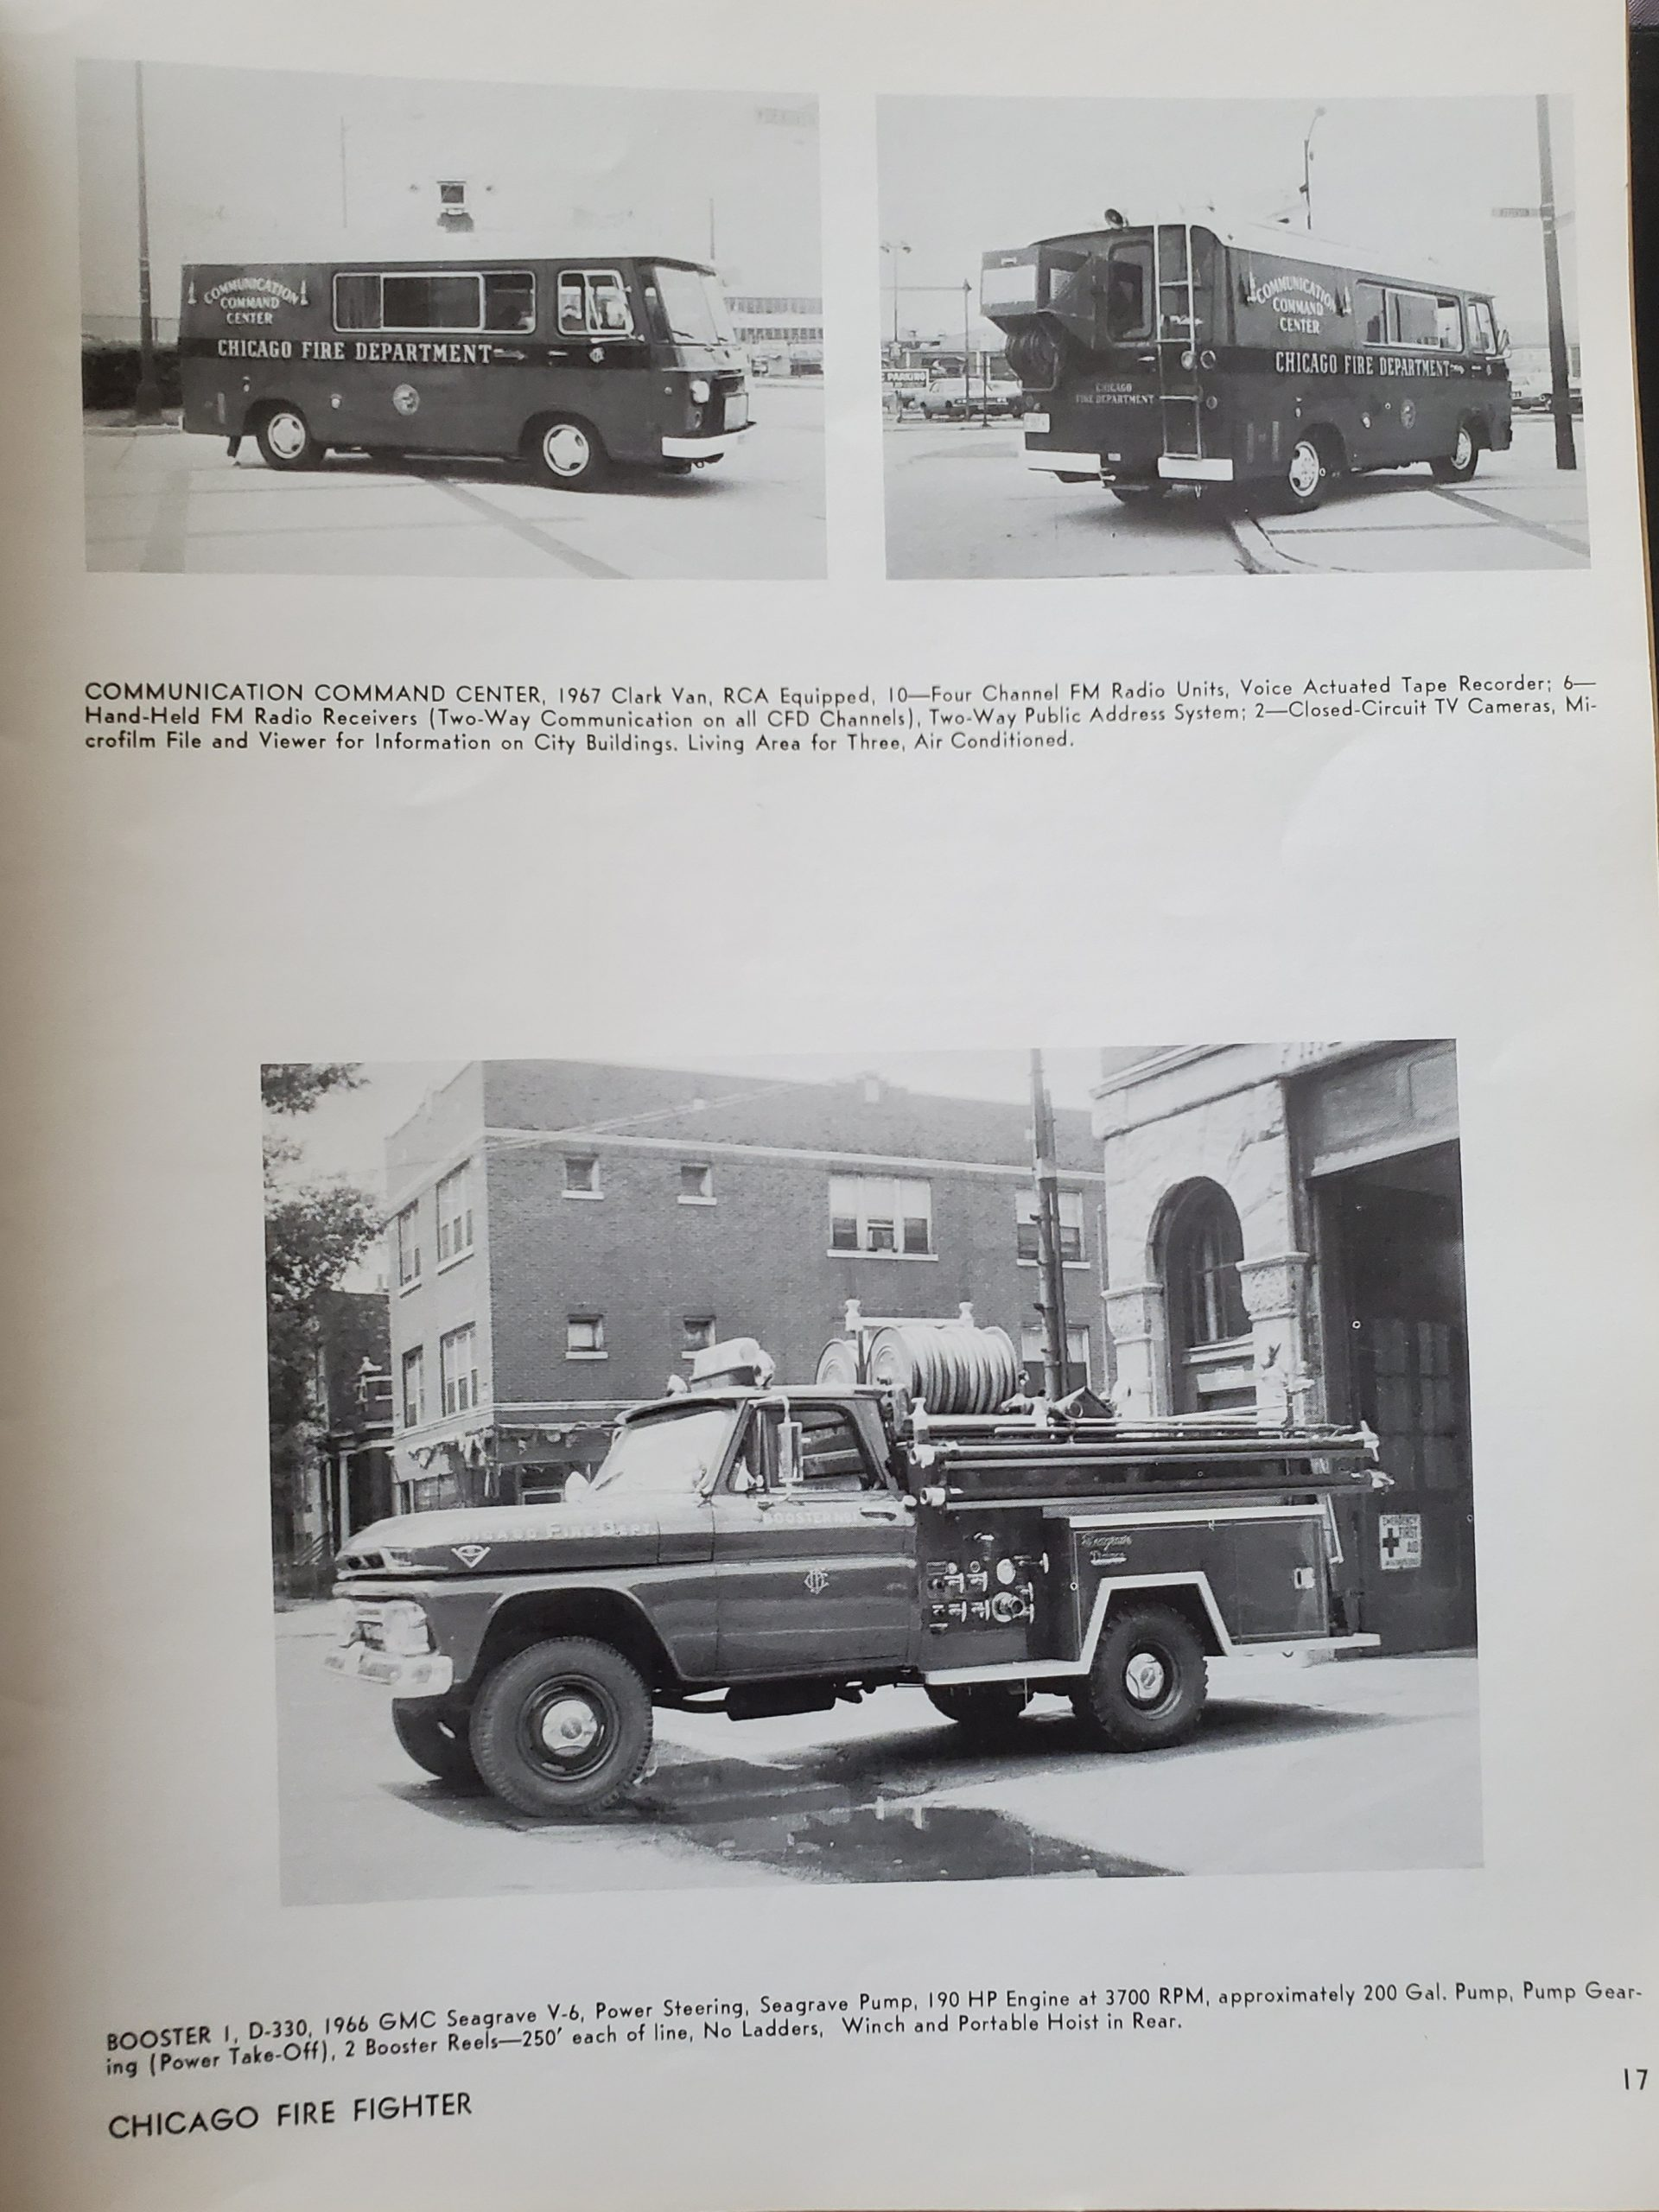 new Chicago fire trucks circa 1967